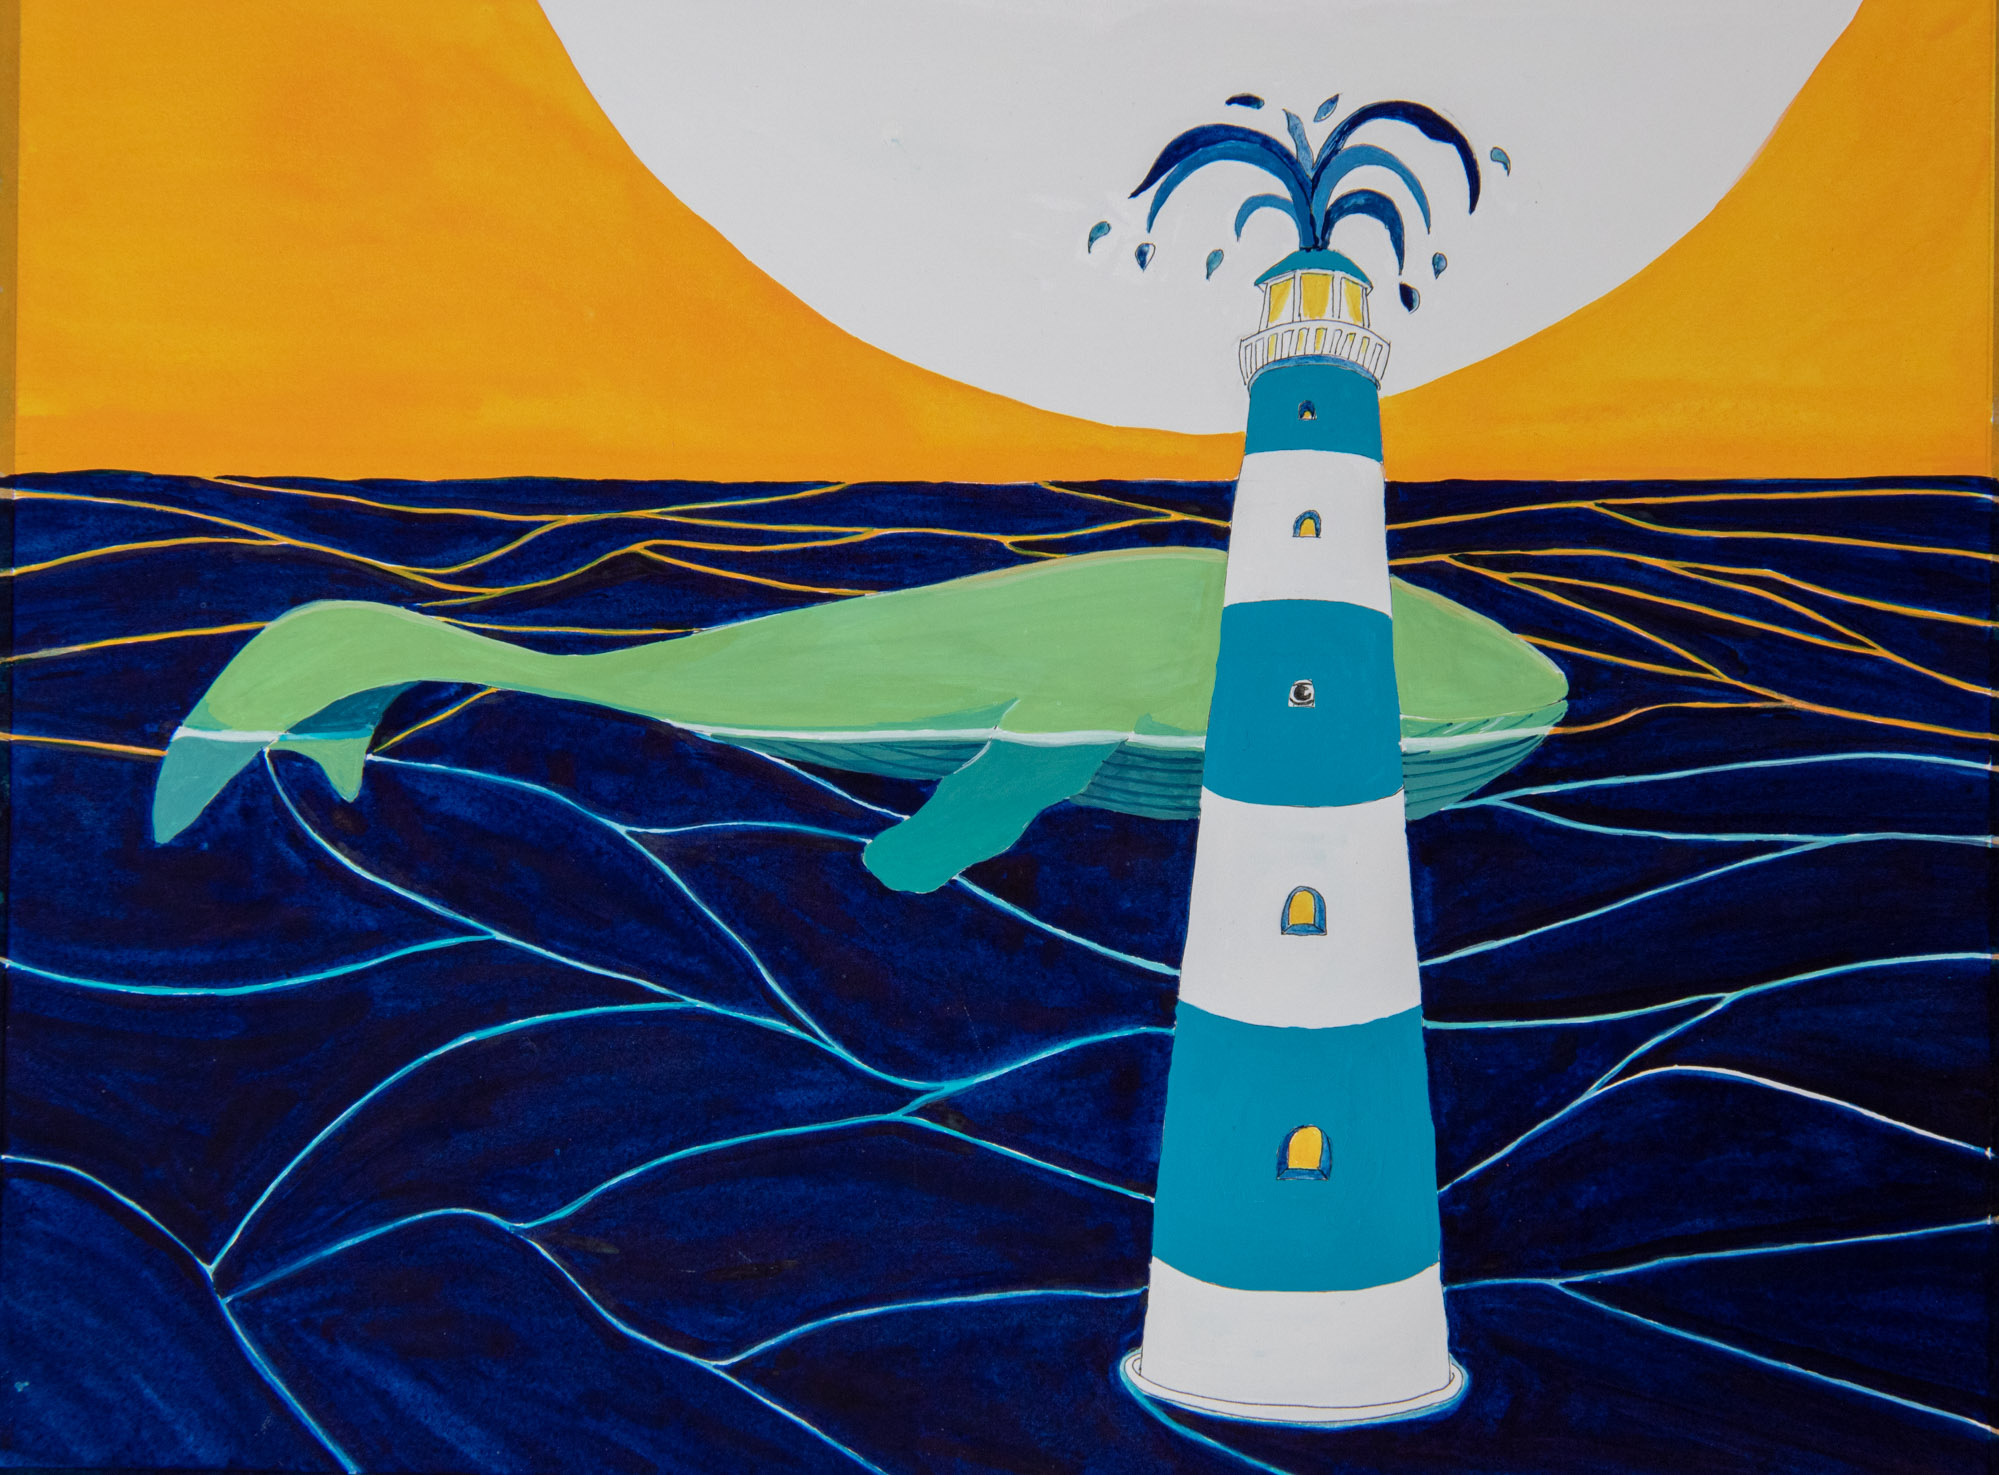 Le phare de la baleine - illustration à la gouache -jeu de d'illusion d'optique